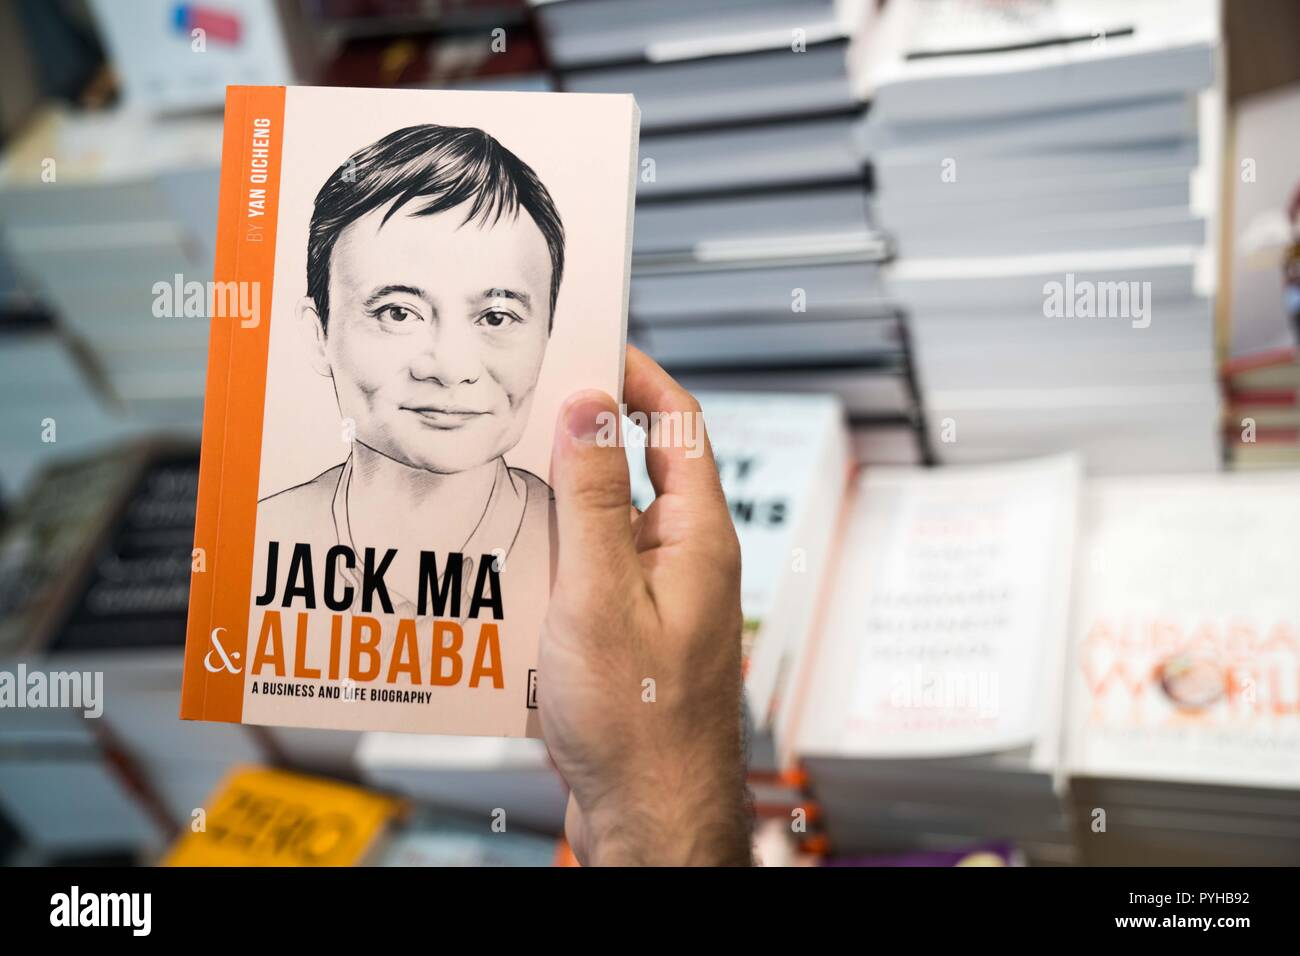 A Book About The Founder Of Alibaba Group Jack Ma Seen On Sale In A